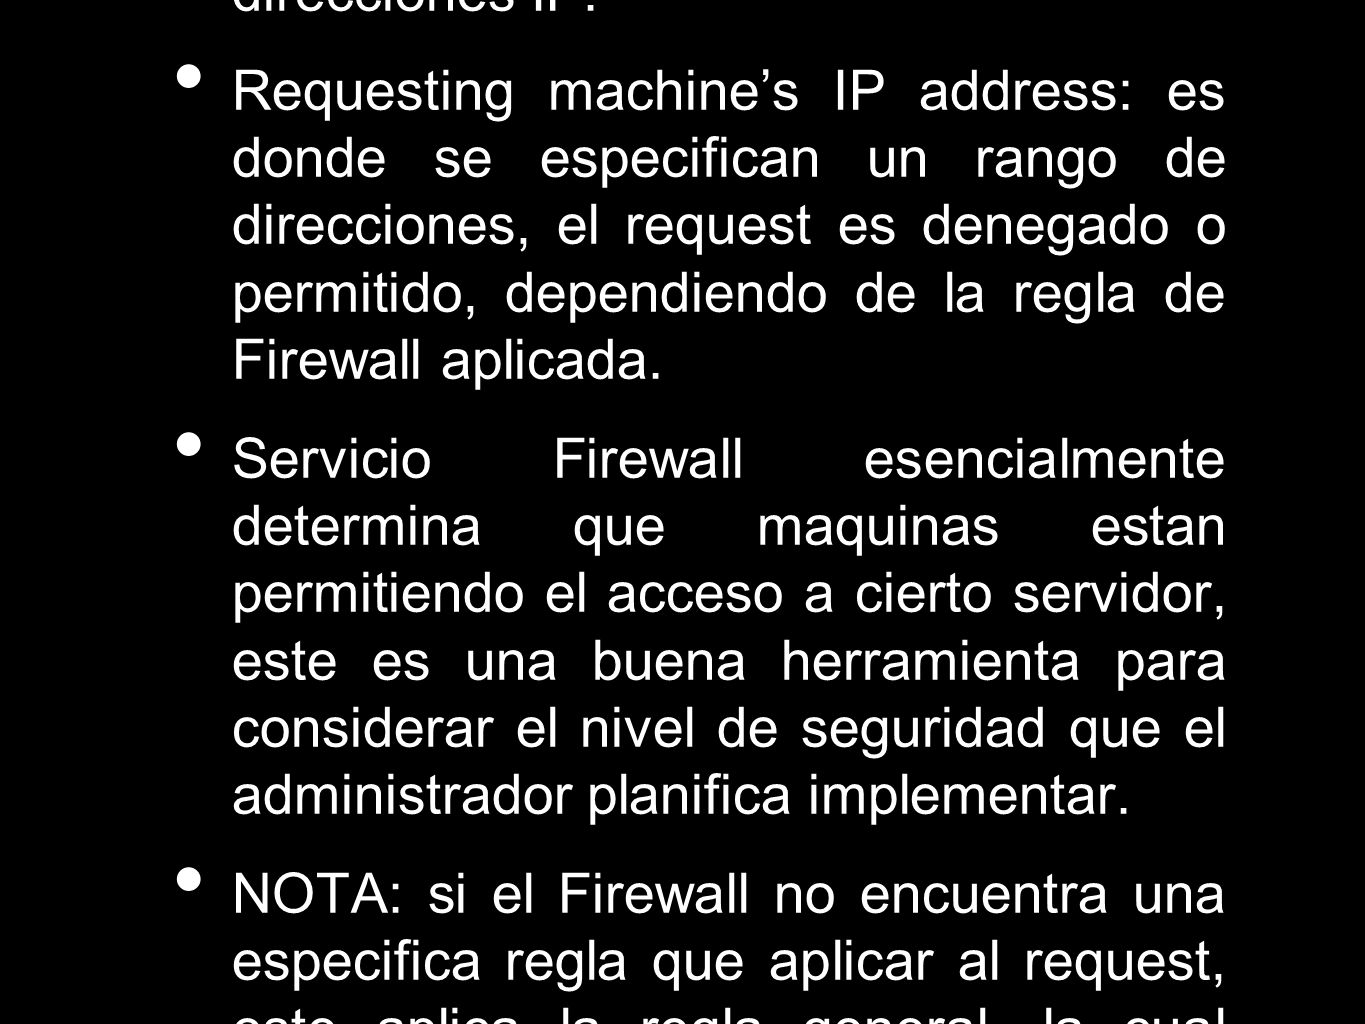 El acceso a través de un Firewall es basado en un requesting machine direcciones IP. Requesting machines IP address: es donde se especifican un rango